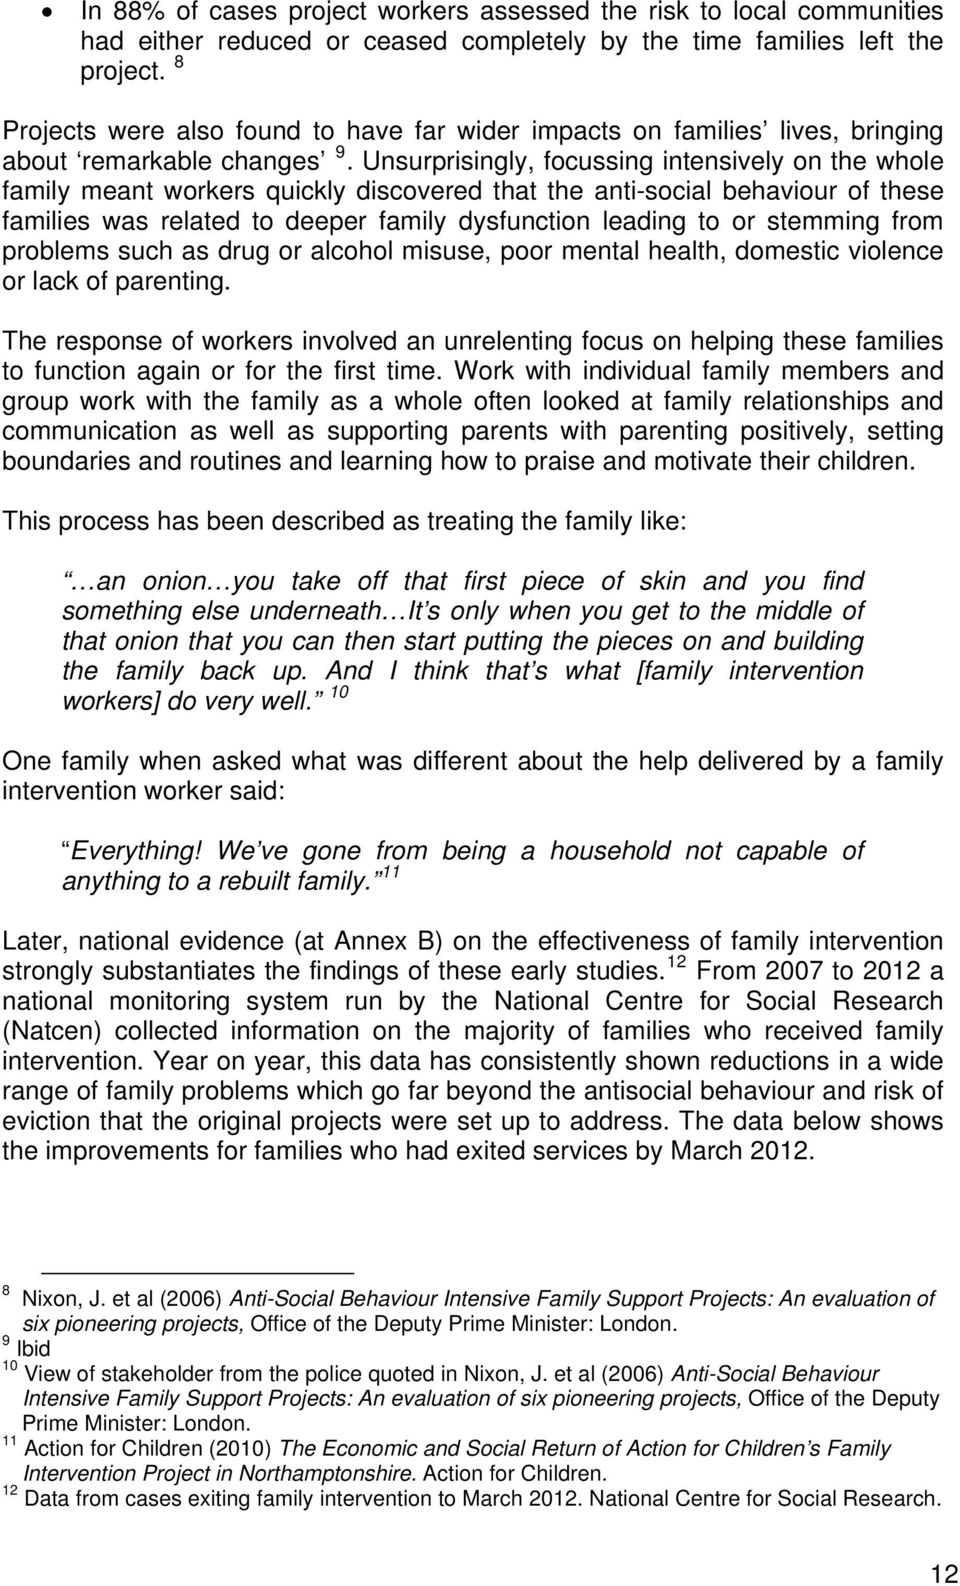 Unsurprisingly, focussing intensively on the whole family meant workers quickly discovered that the anti-social behaviour of these families was related to deeper family dysfunction leading to or